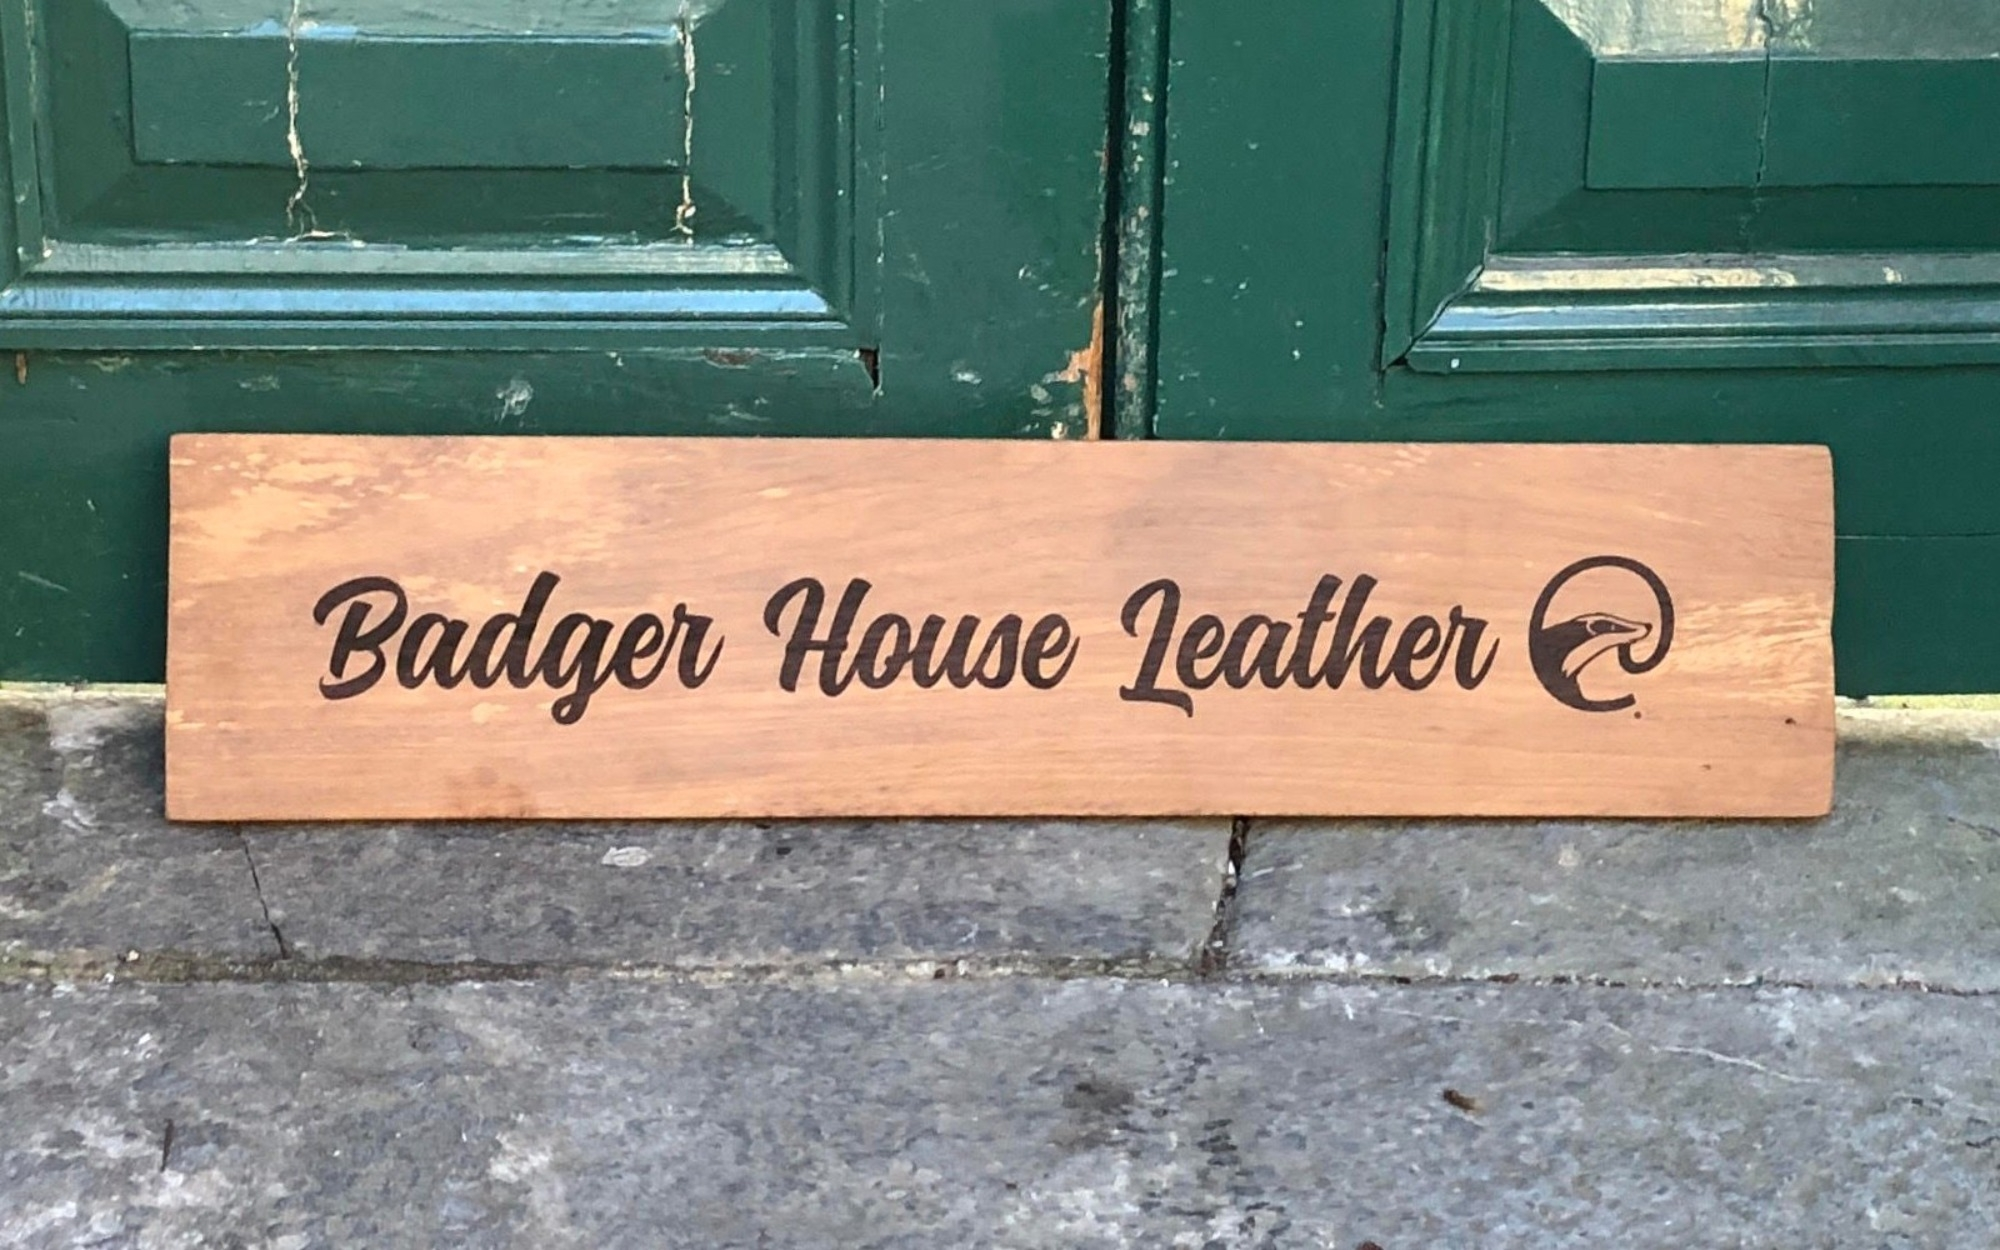 Badger House Leather in Frome, Somerset